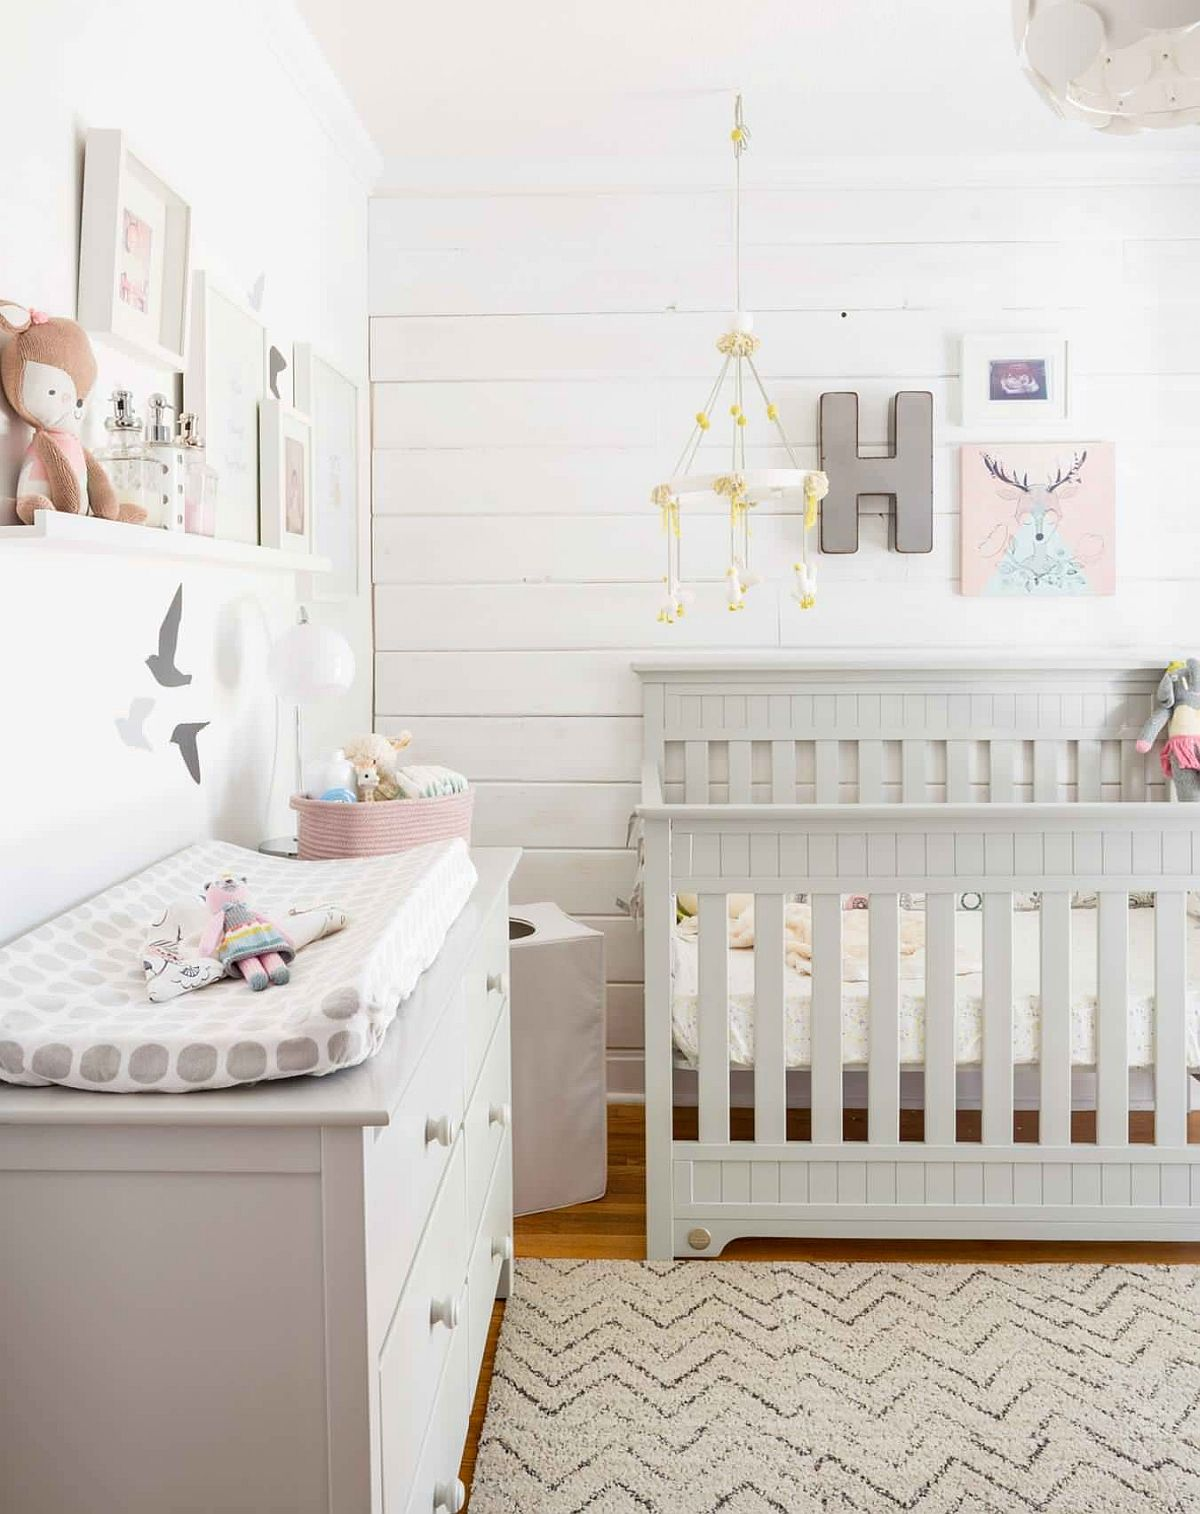 Girls' nursery feels refreshing and modern thanks to its white and wood color palette